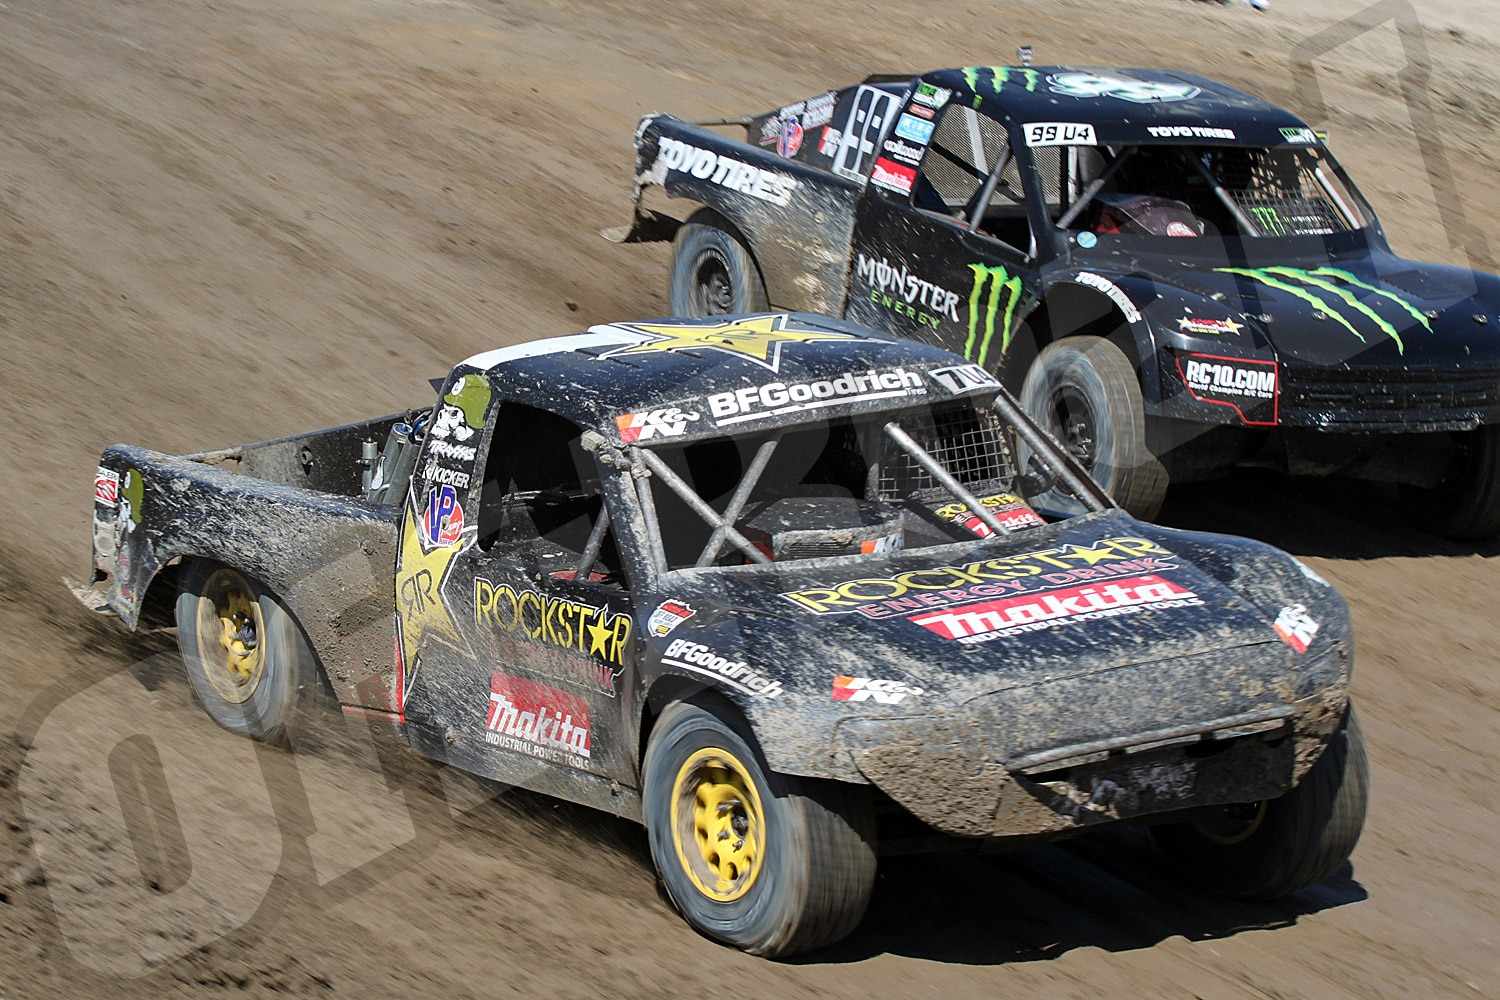 050312or 7572+2012 lucas oil off road racing series round 3+pro 4